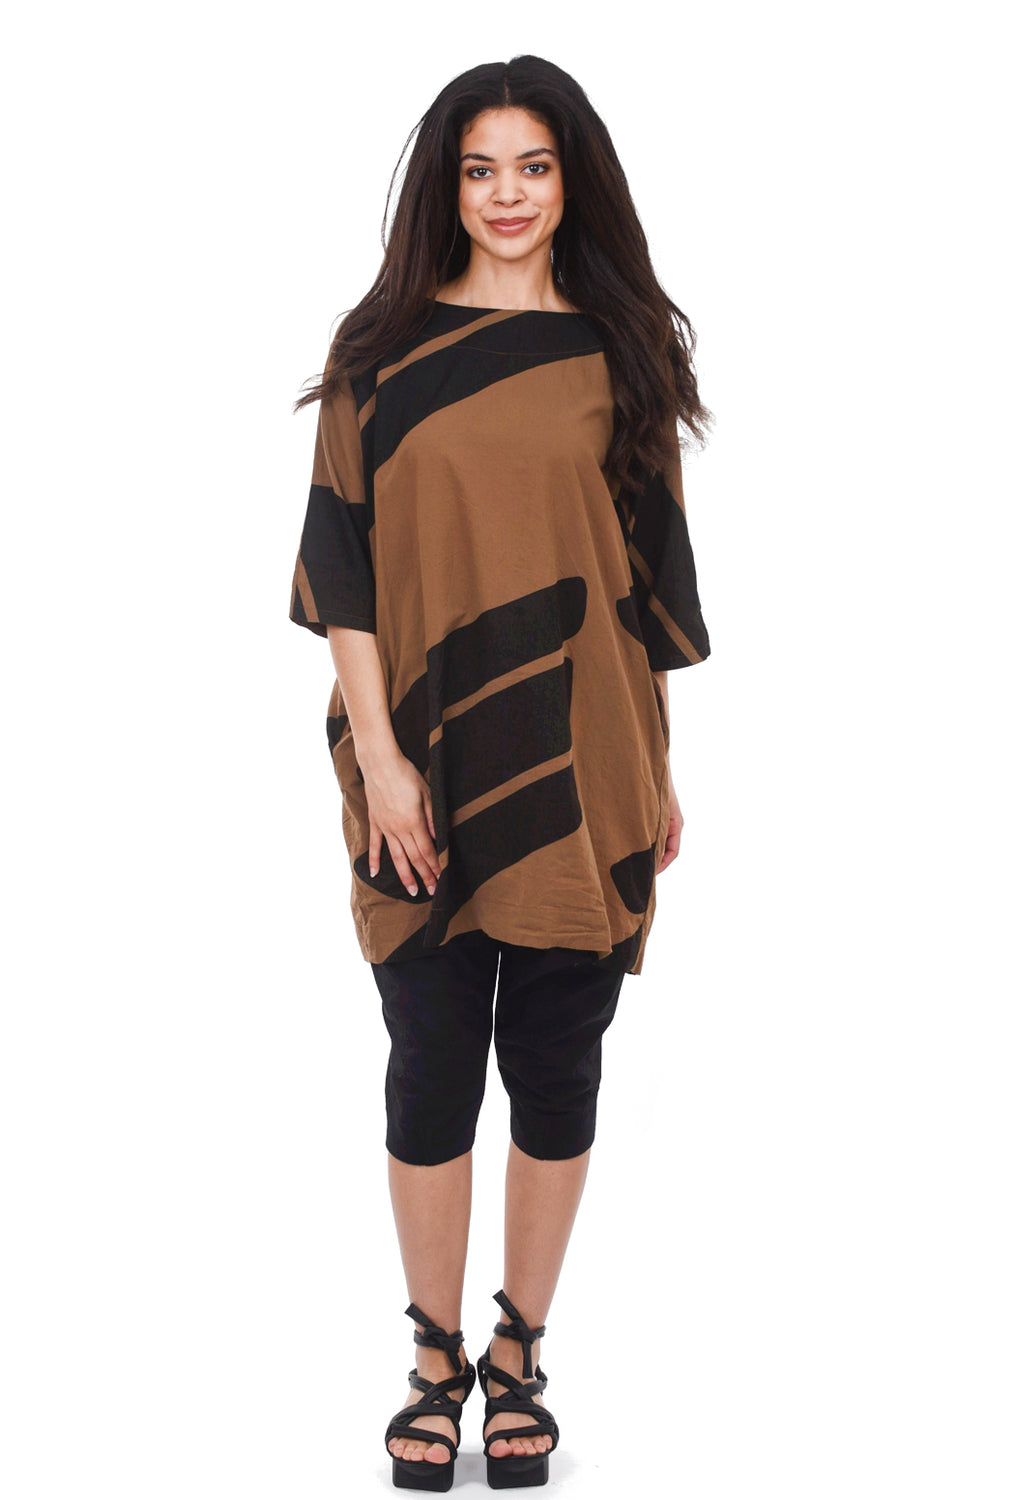 Uzi NYC Uzi Print Now Dress, Brown Swipe